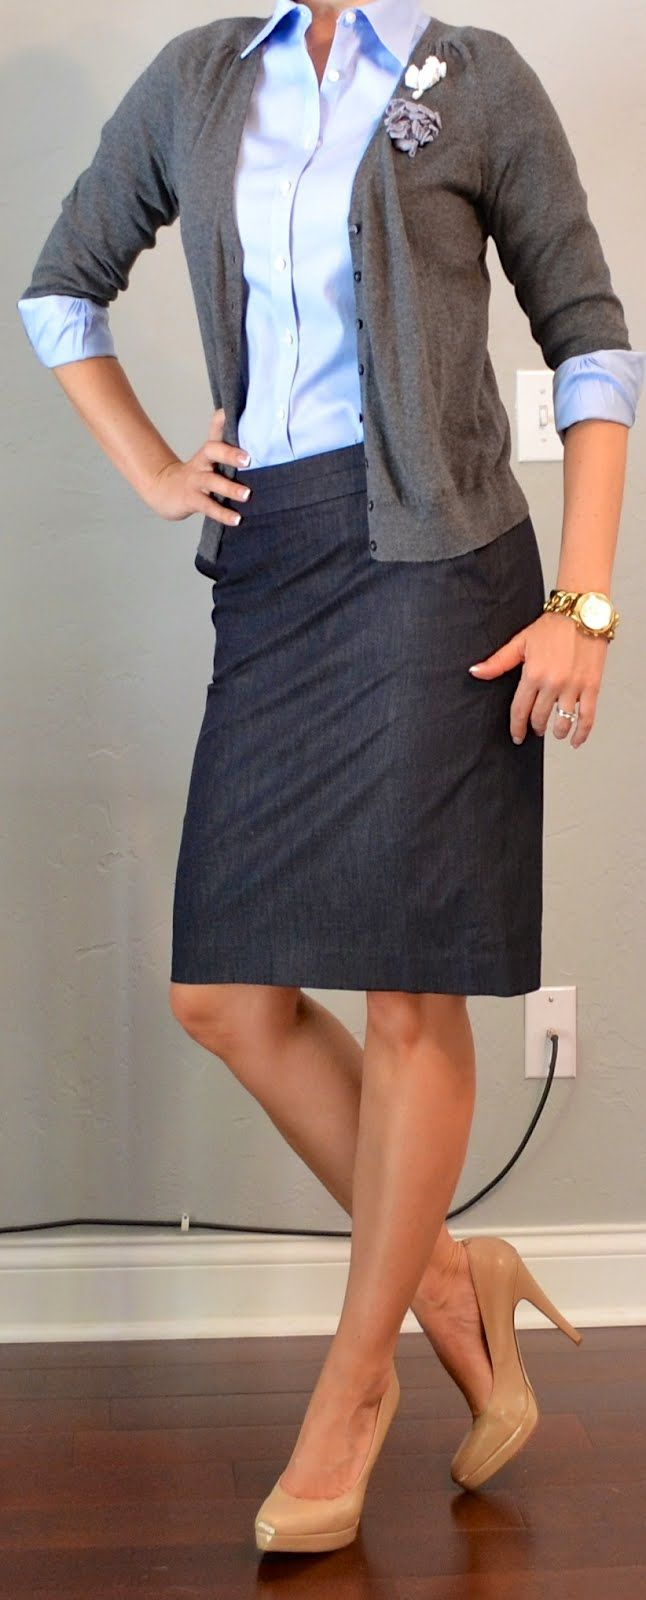 Cardi & Denim pencil skirt with blue button down---timeless. Love the shoes too.: Outfits Posts, Offices, Denim Pencil Skirts, Outfit Posts, Work Outfits, Blue Buttons, Anne Taylors Loft, Teacher Outfits, Grey Cardigans